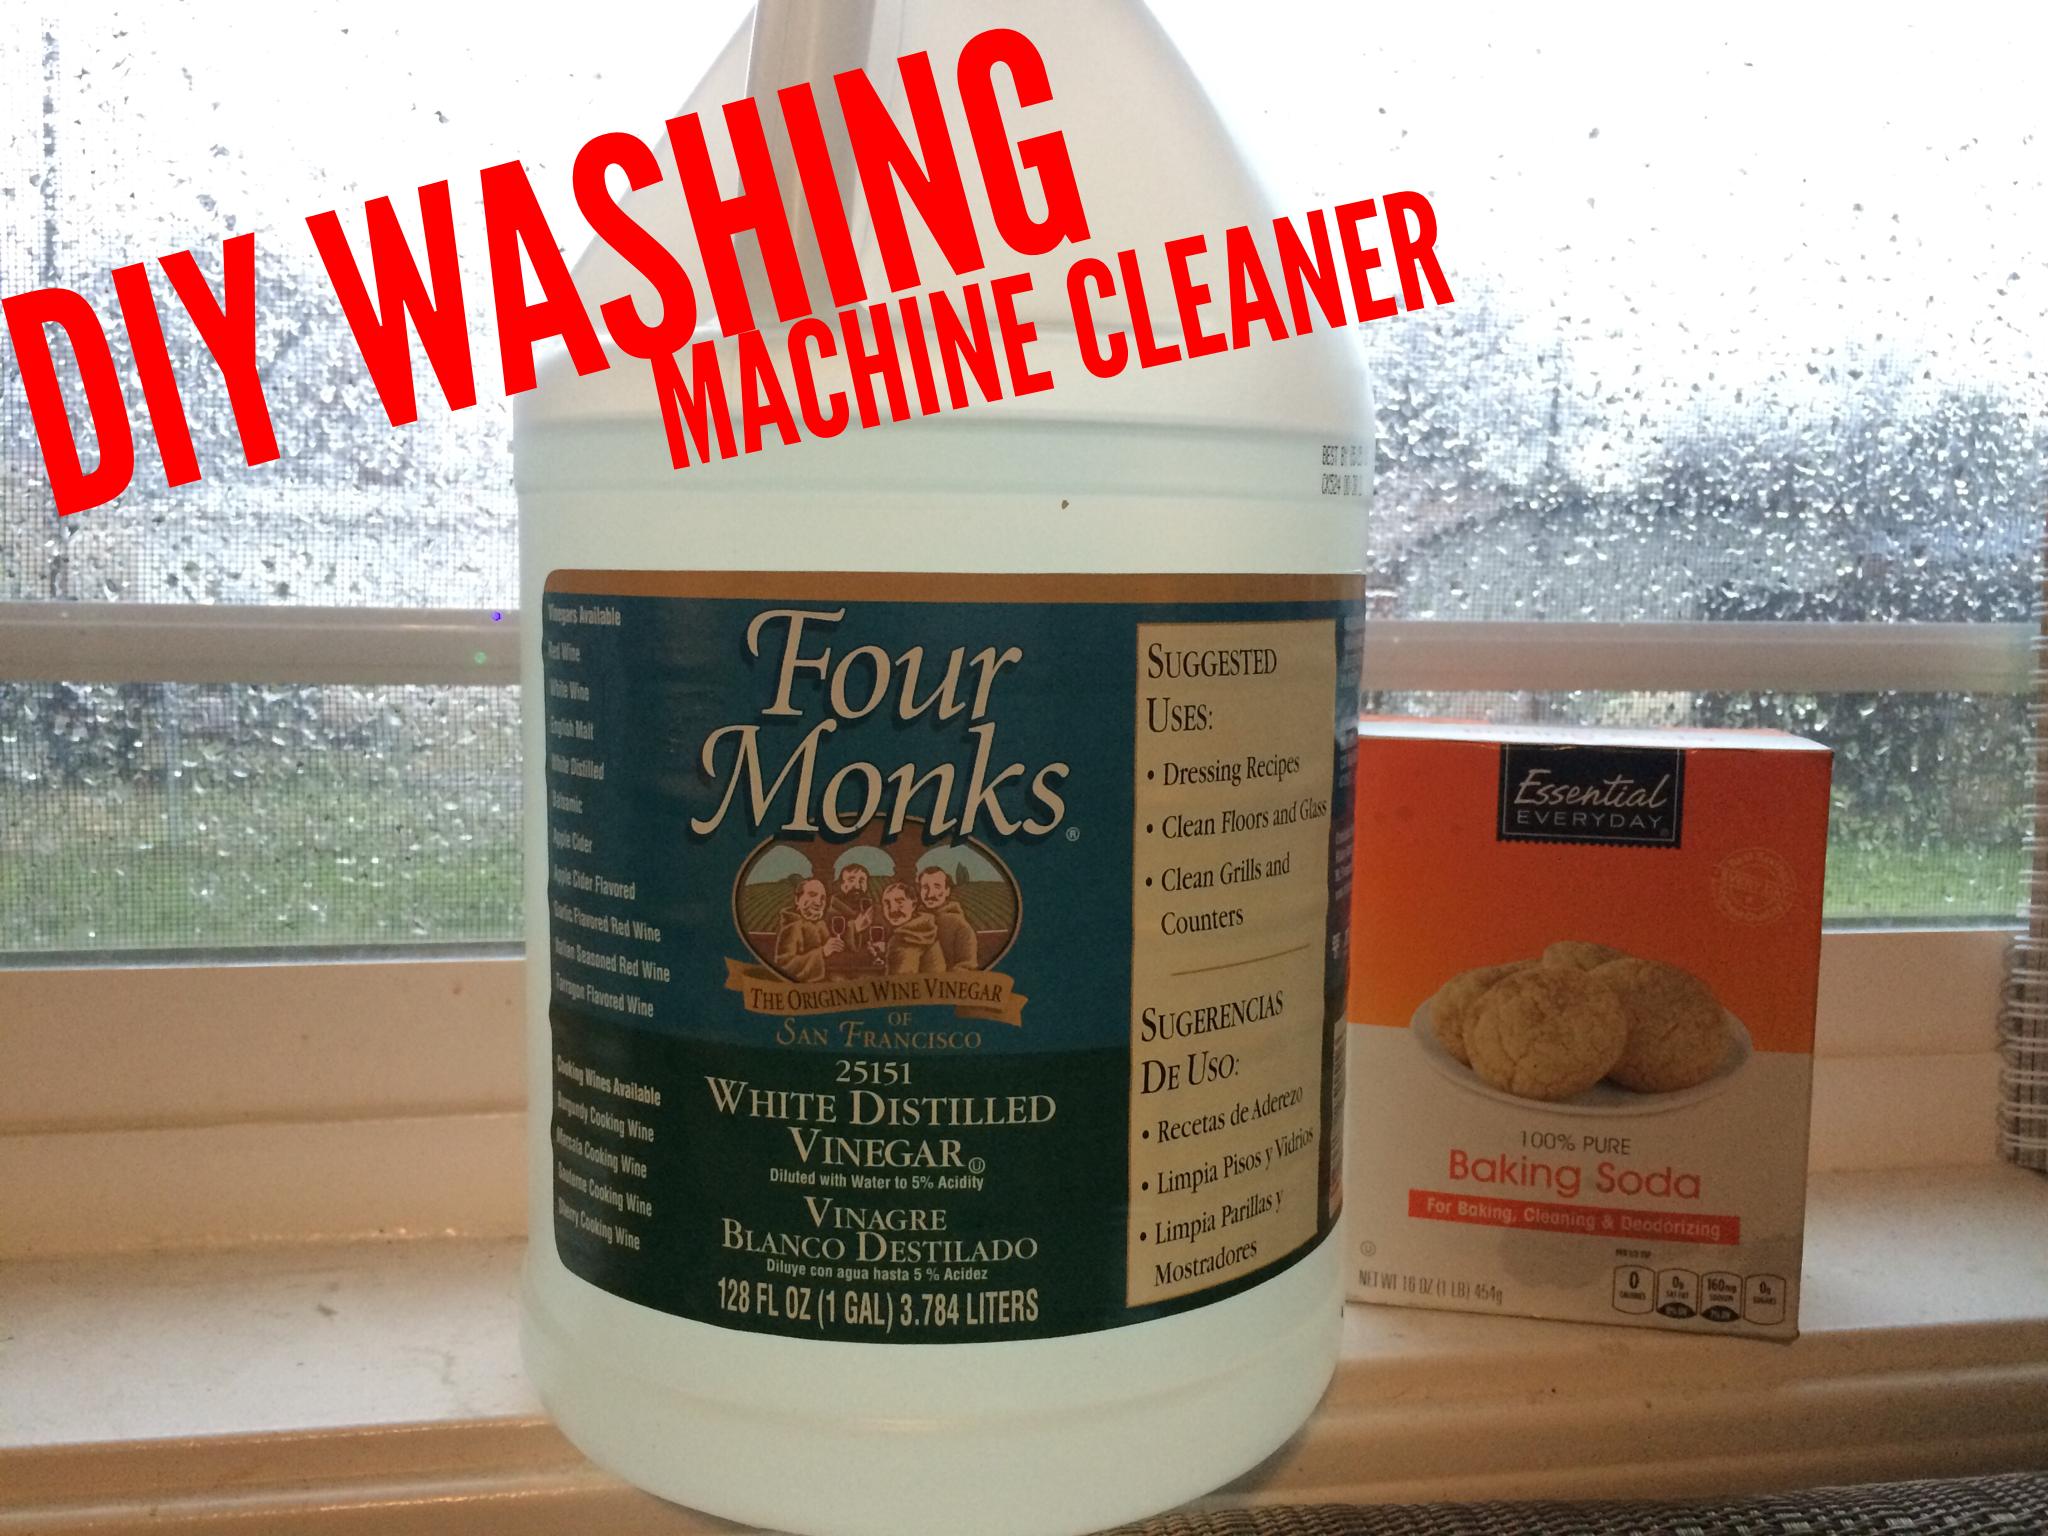 diy washing machine cleaner vinegar and baking soda team up to clean your he washing machine. Black Bedroom Furniture Sets. Home Design Ideas